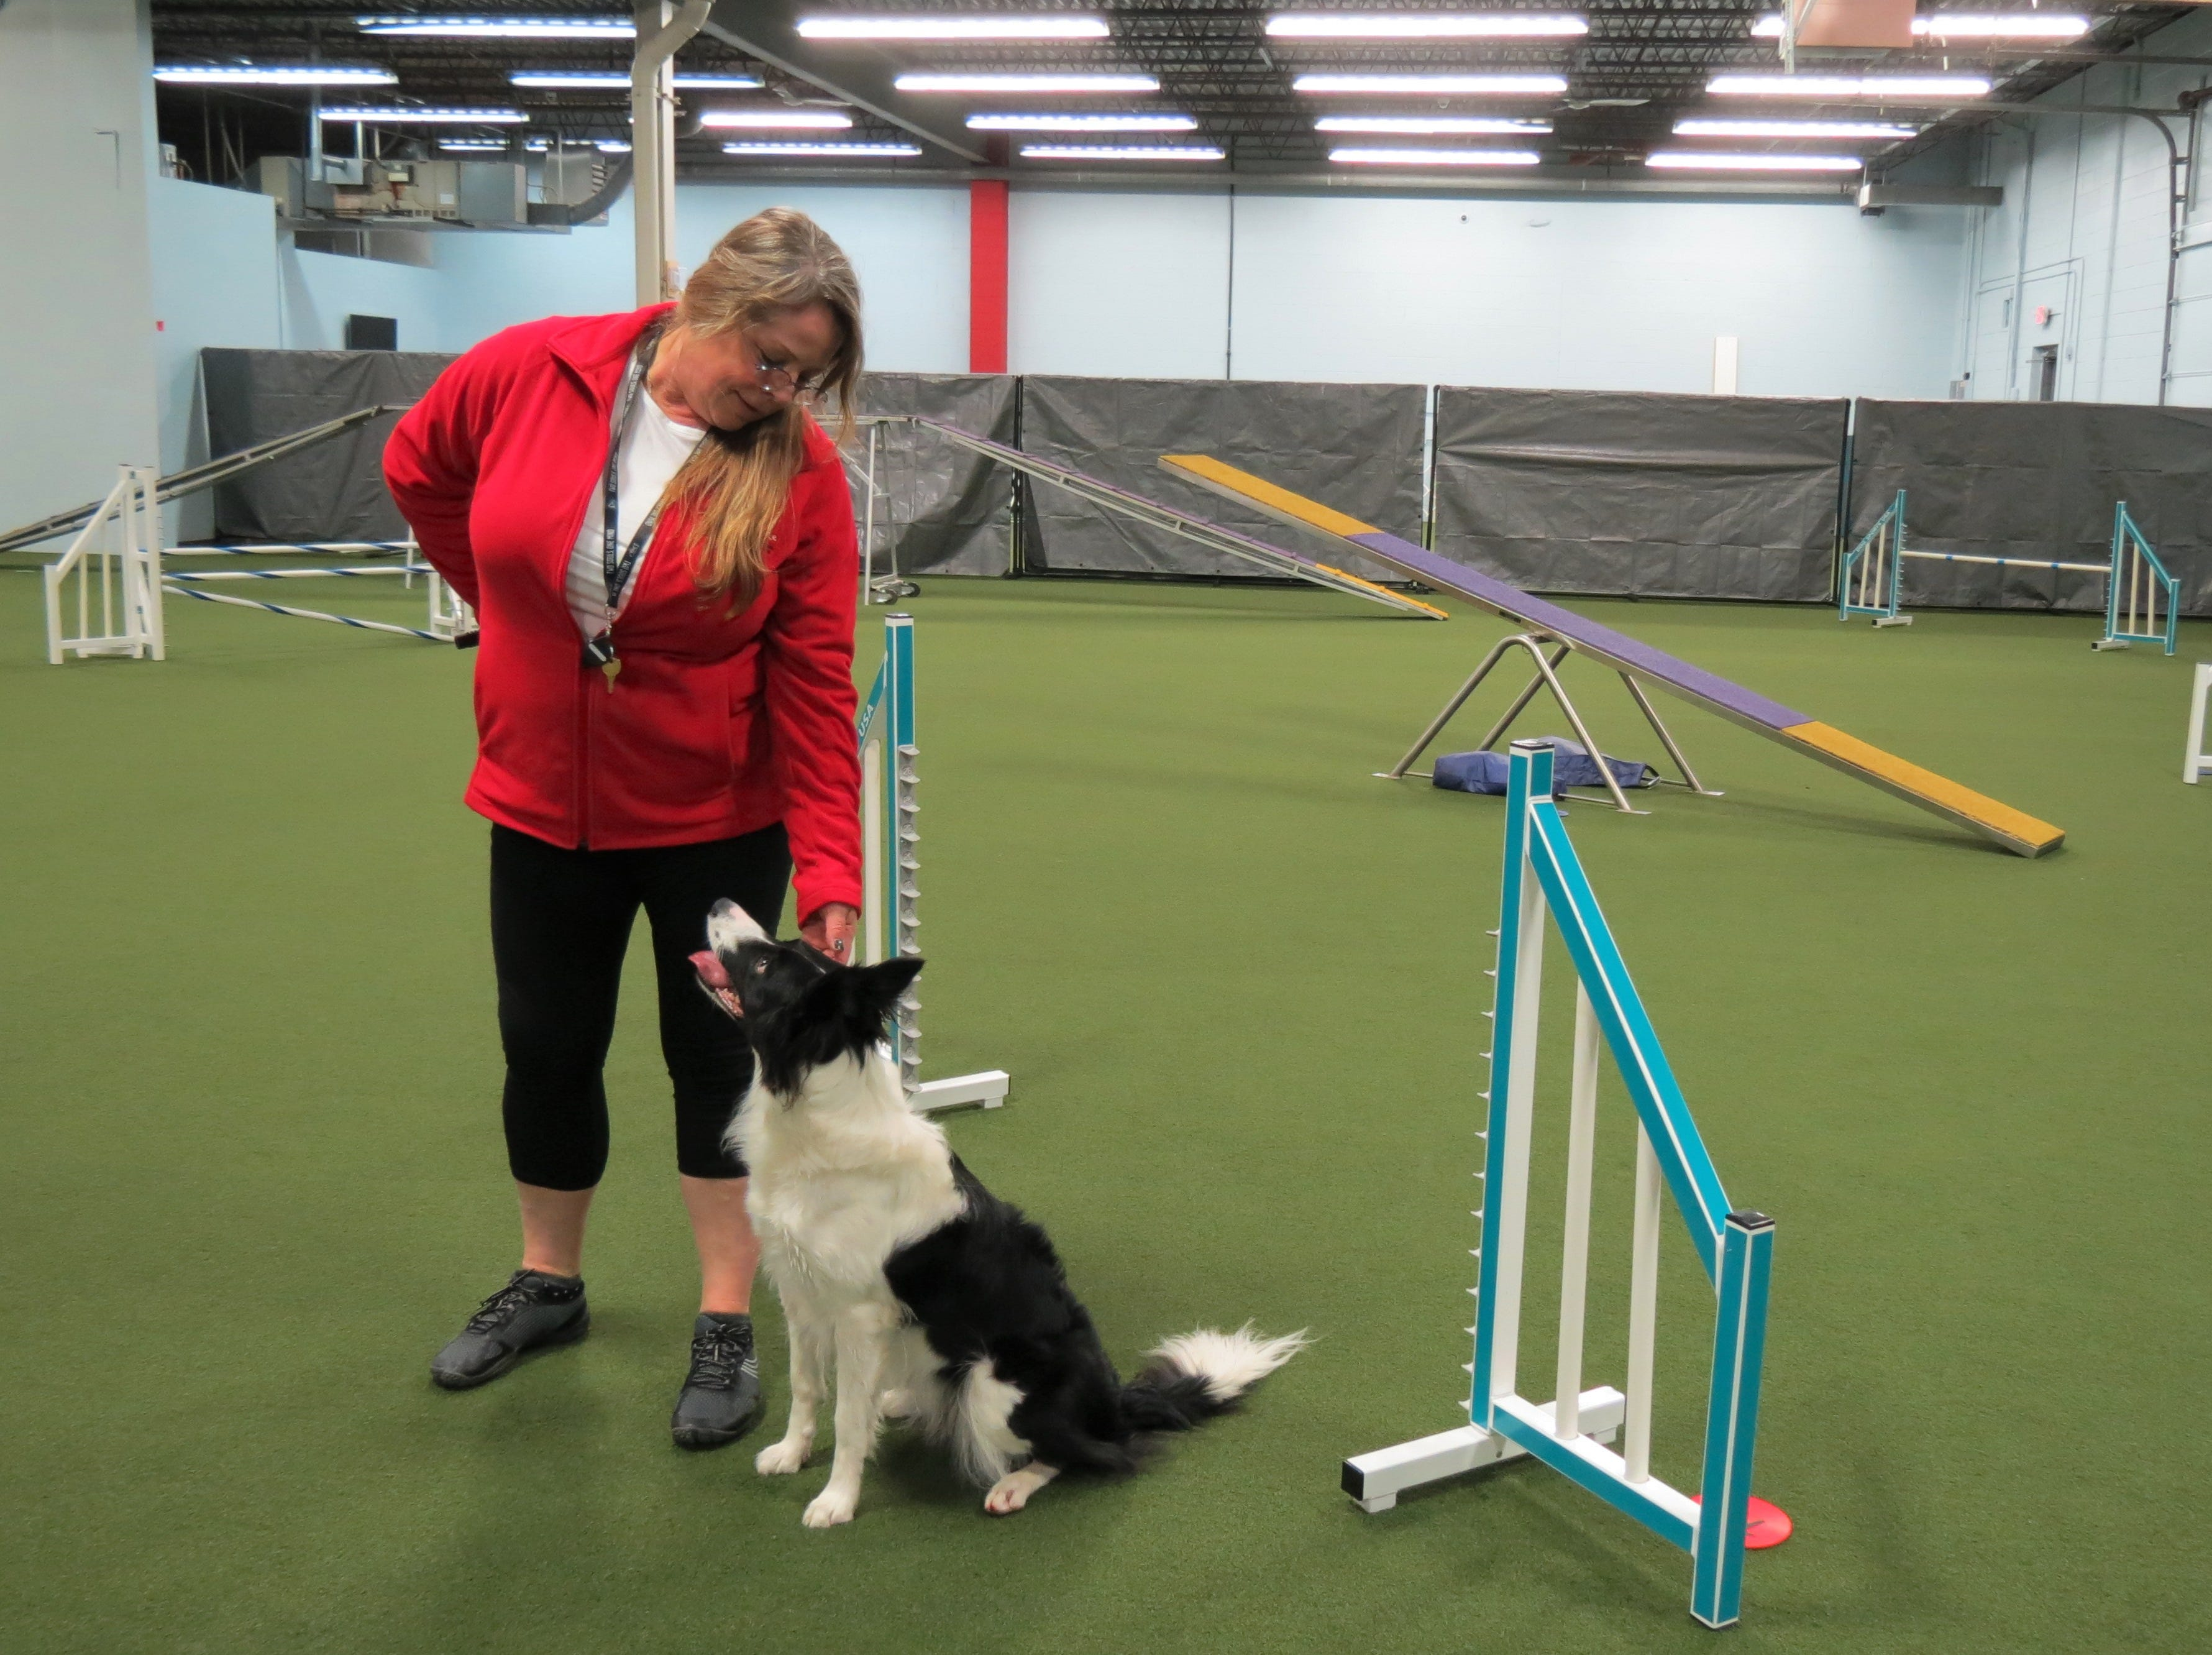 D. Lynne Luckow, the owner of Redline training center, works with her dog Power.